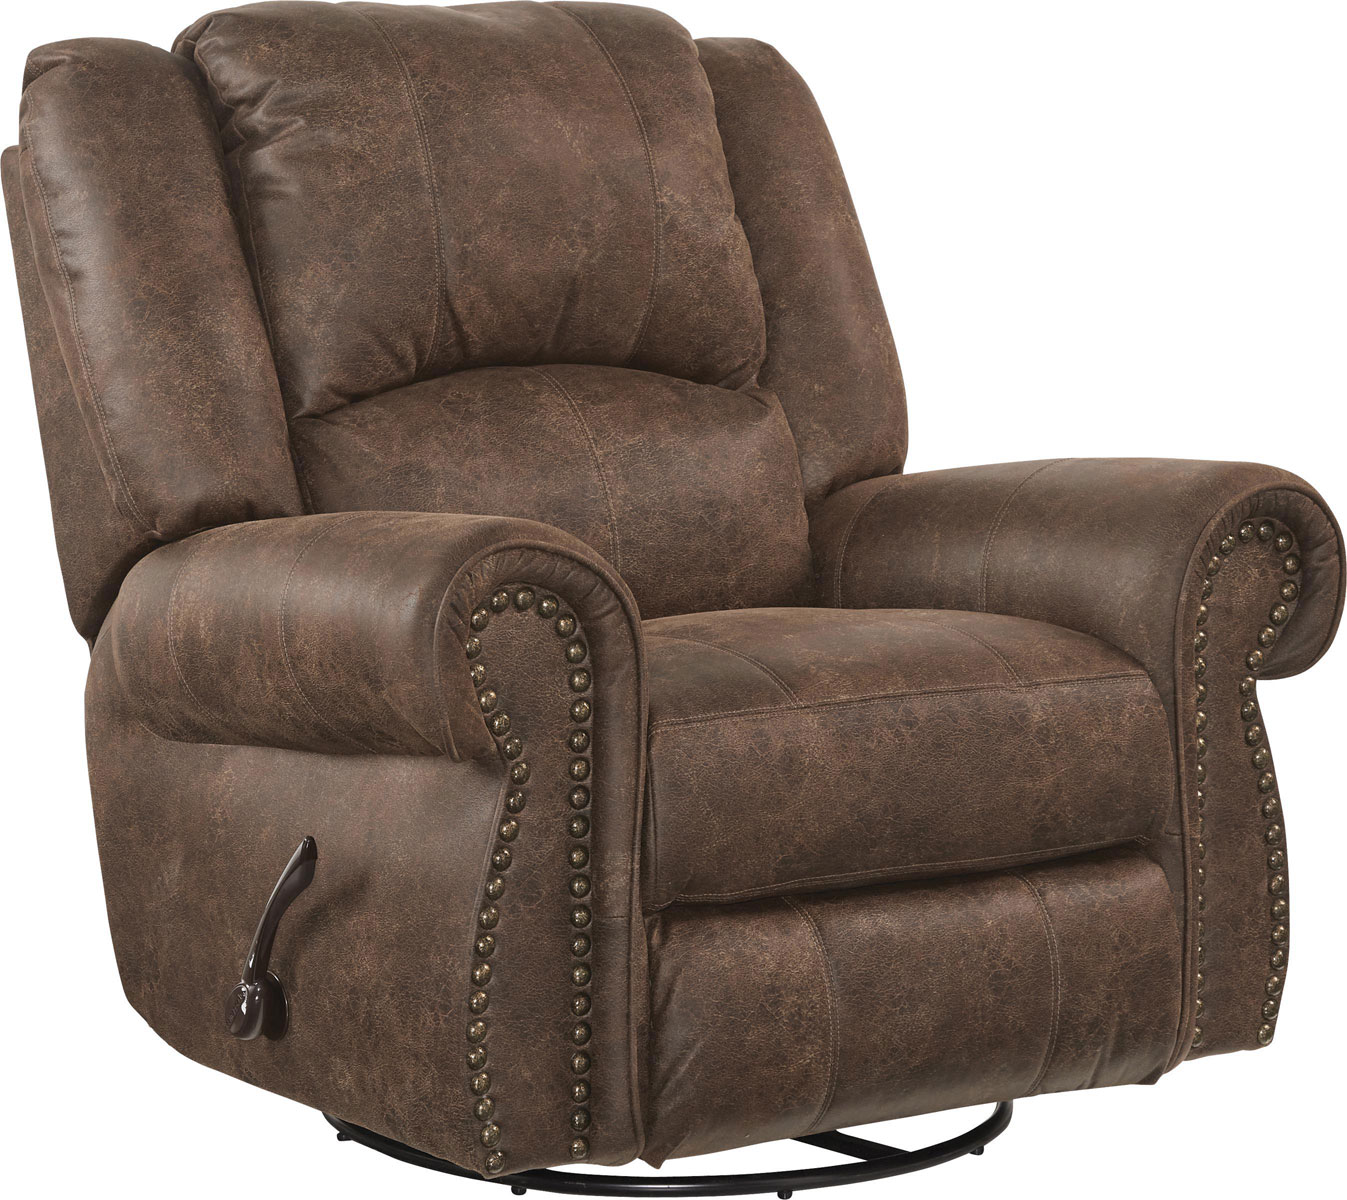 Catnapper Chair Catnapper Westin Swivel Glider Recliner Tanner Cn 1050 5